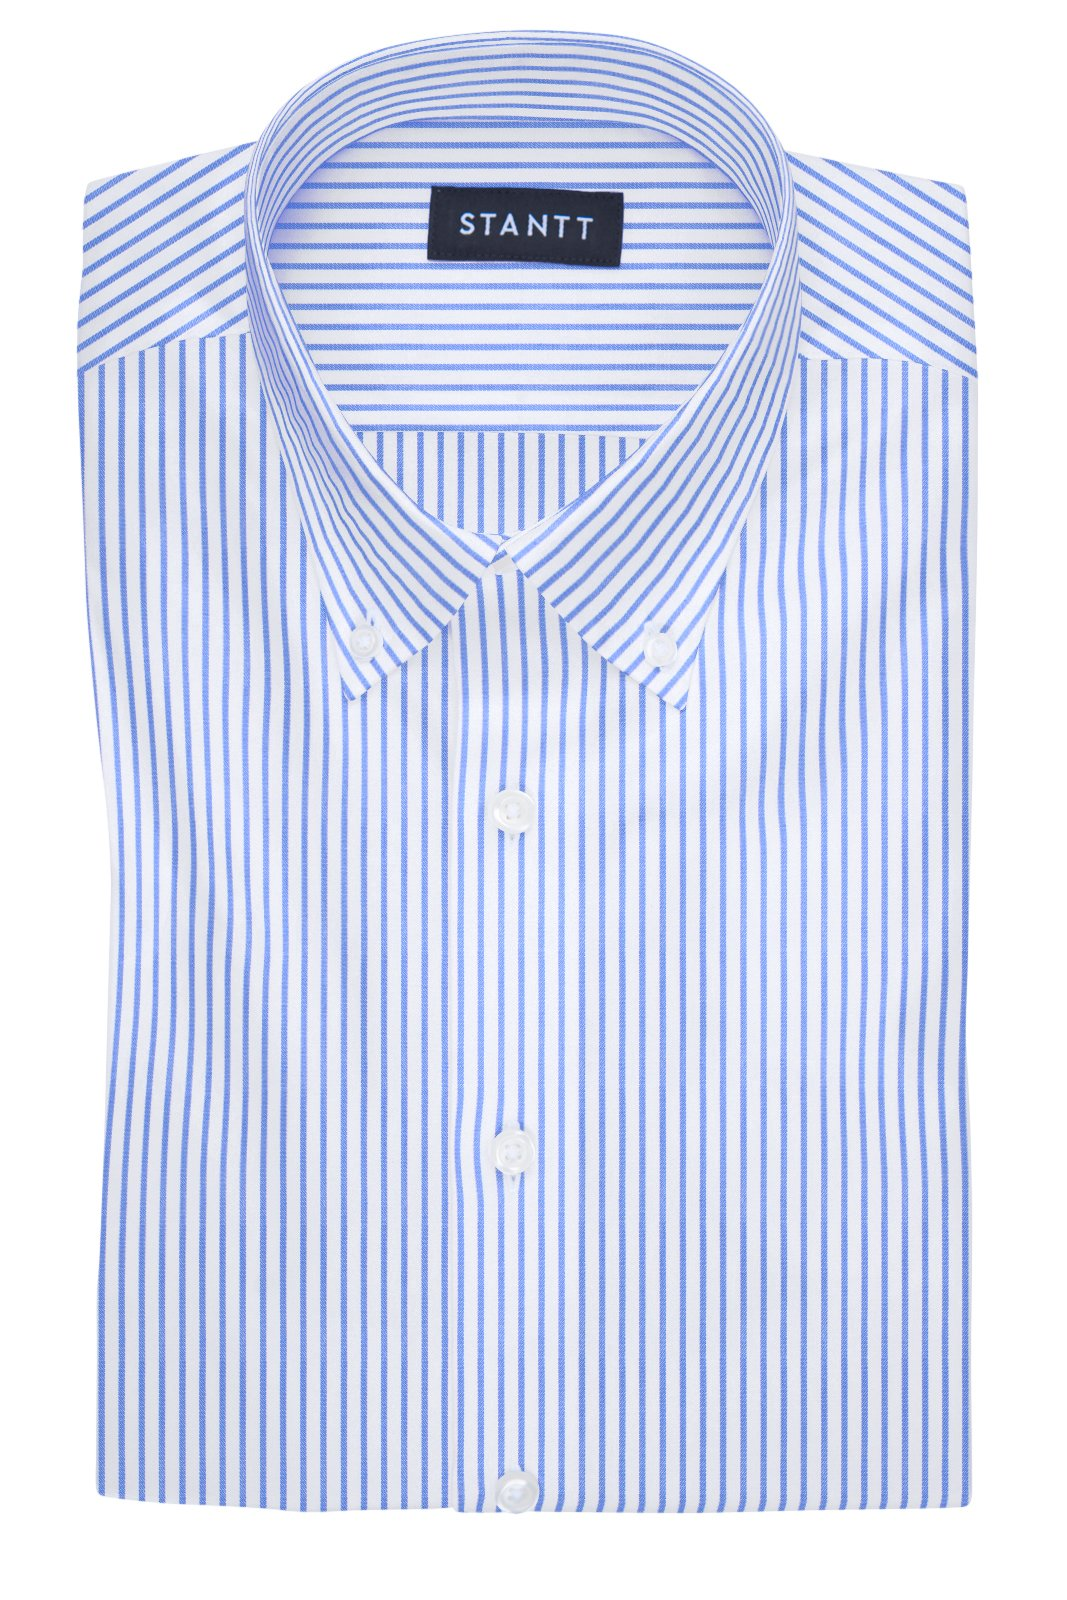 Wrinkle-Resistant Blue Bengal Stripe: Button-Down Collar, Barrel Cuff